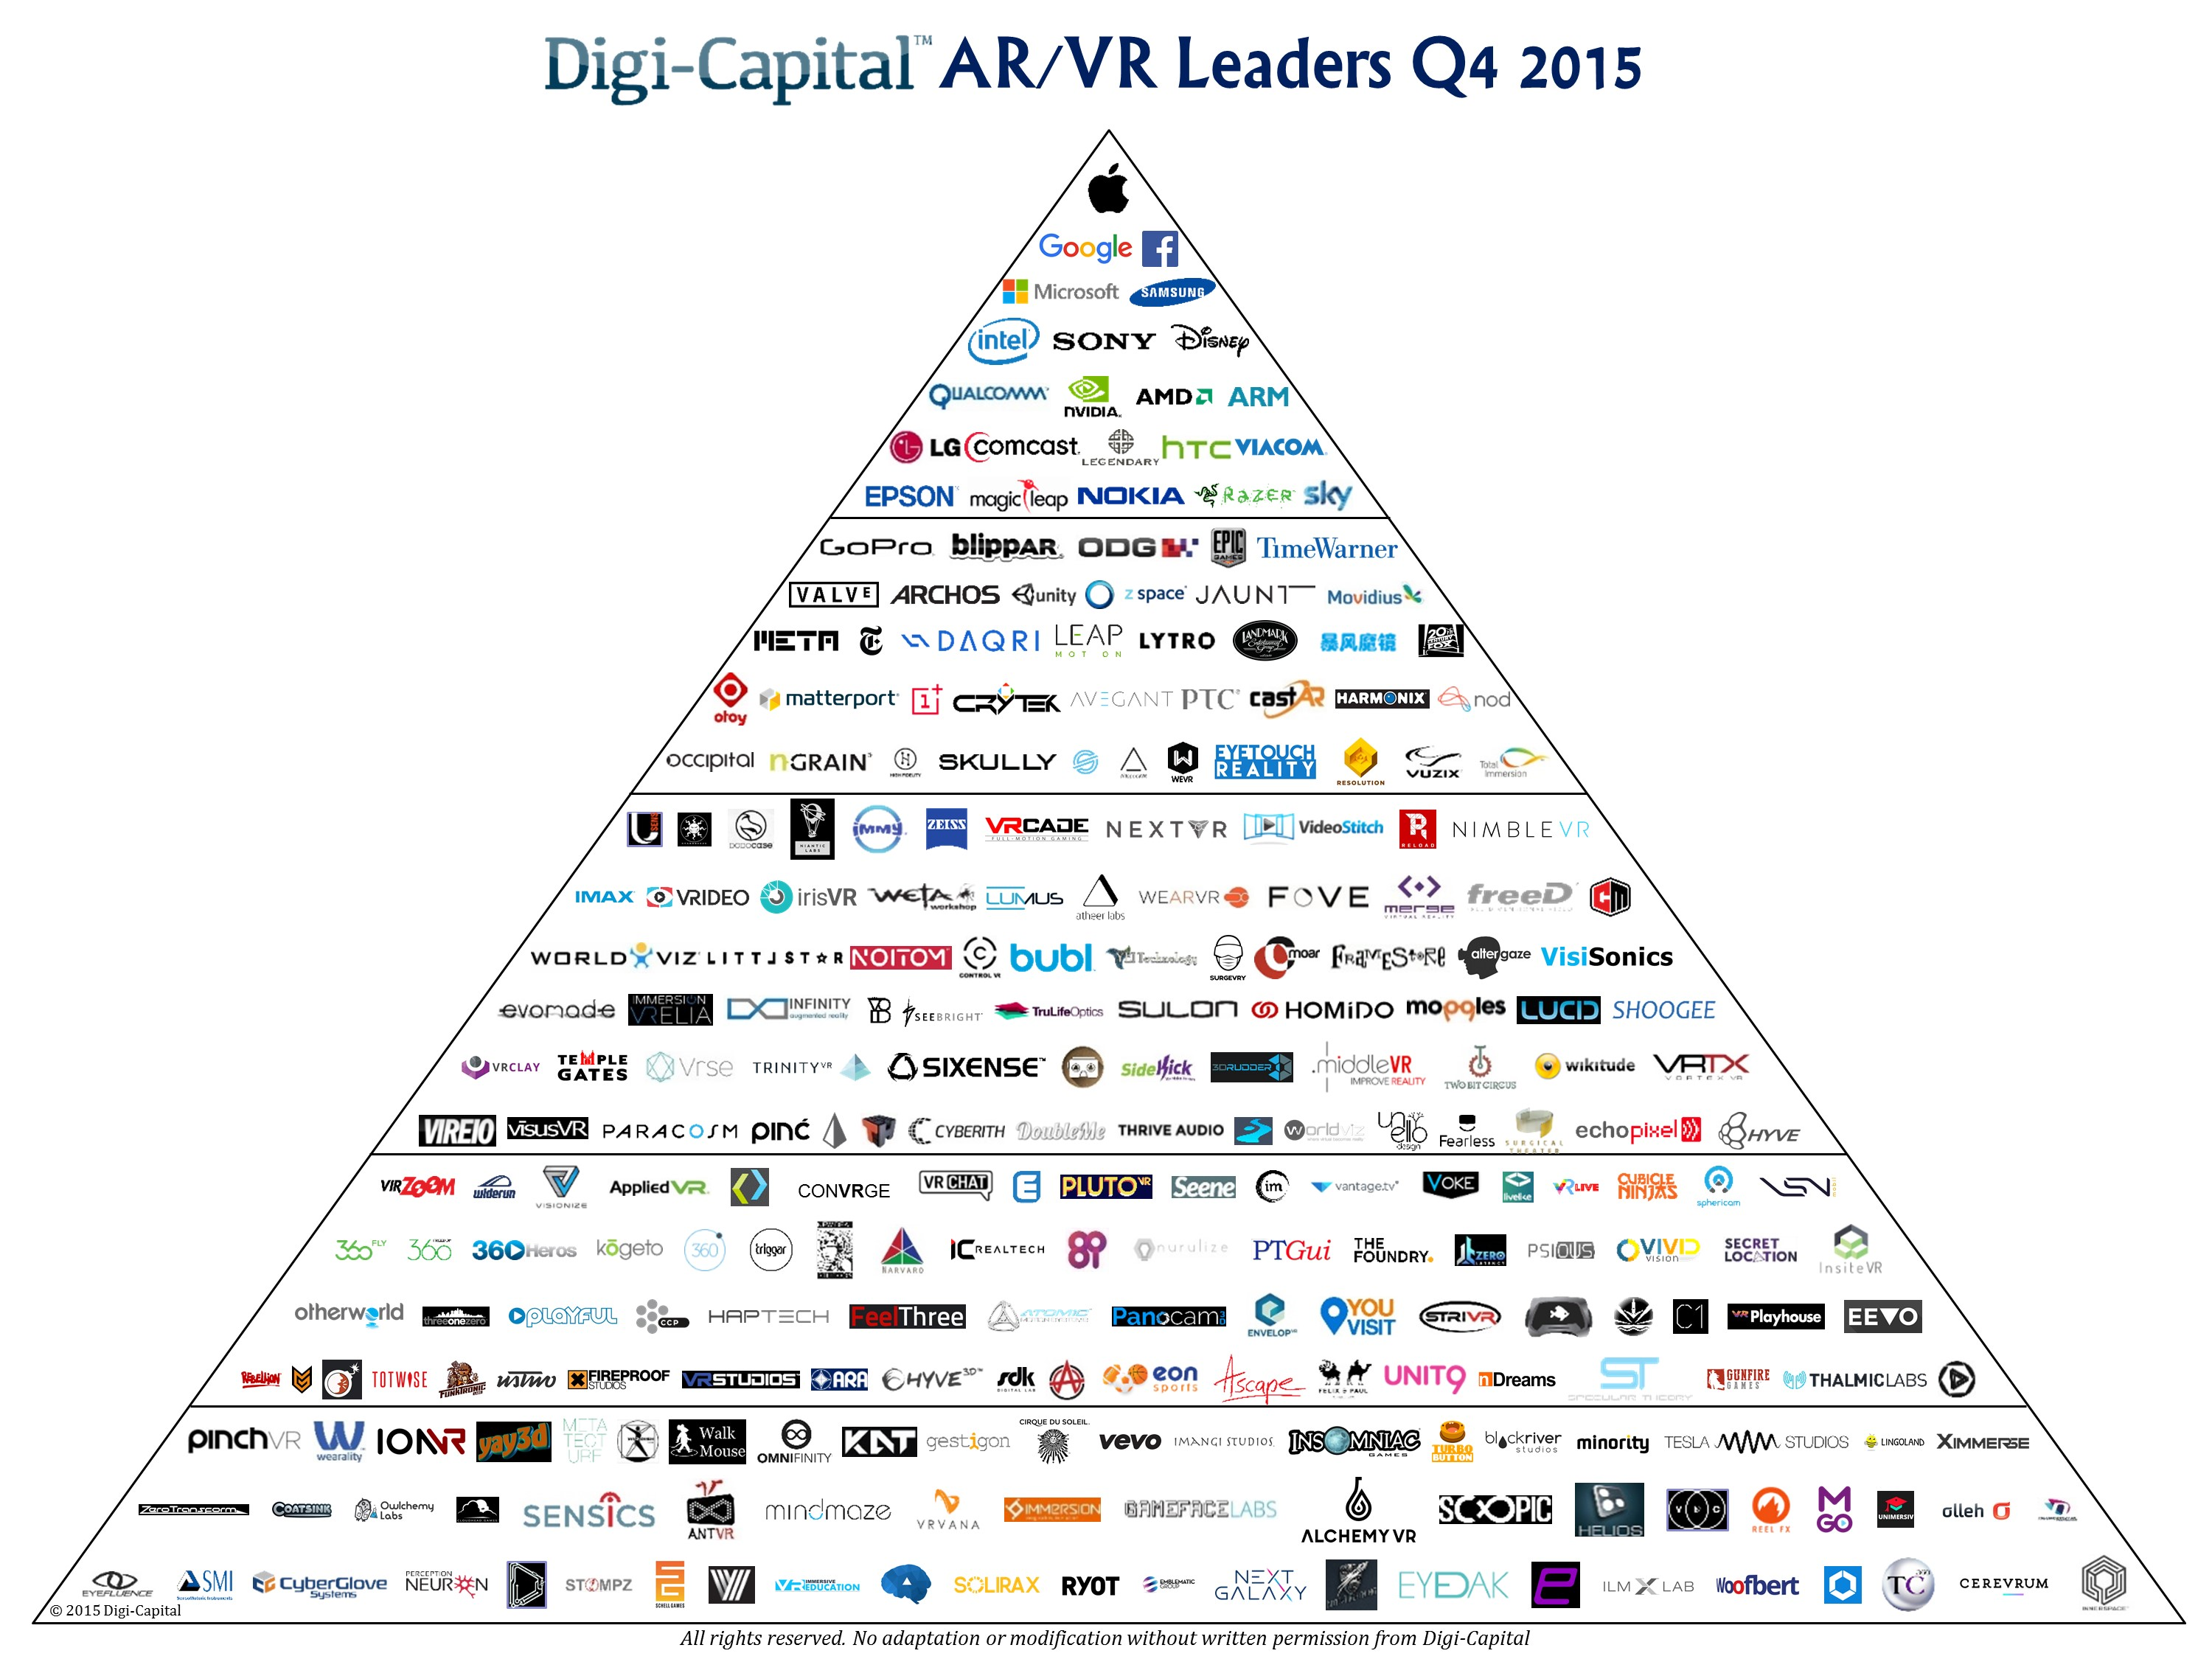 Digi-Capital ARVR Leaders Q4 2015